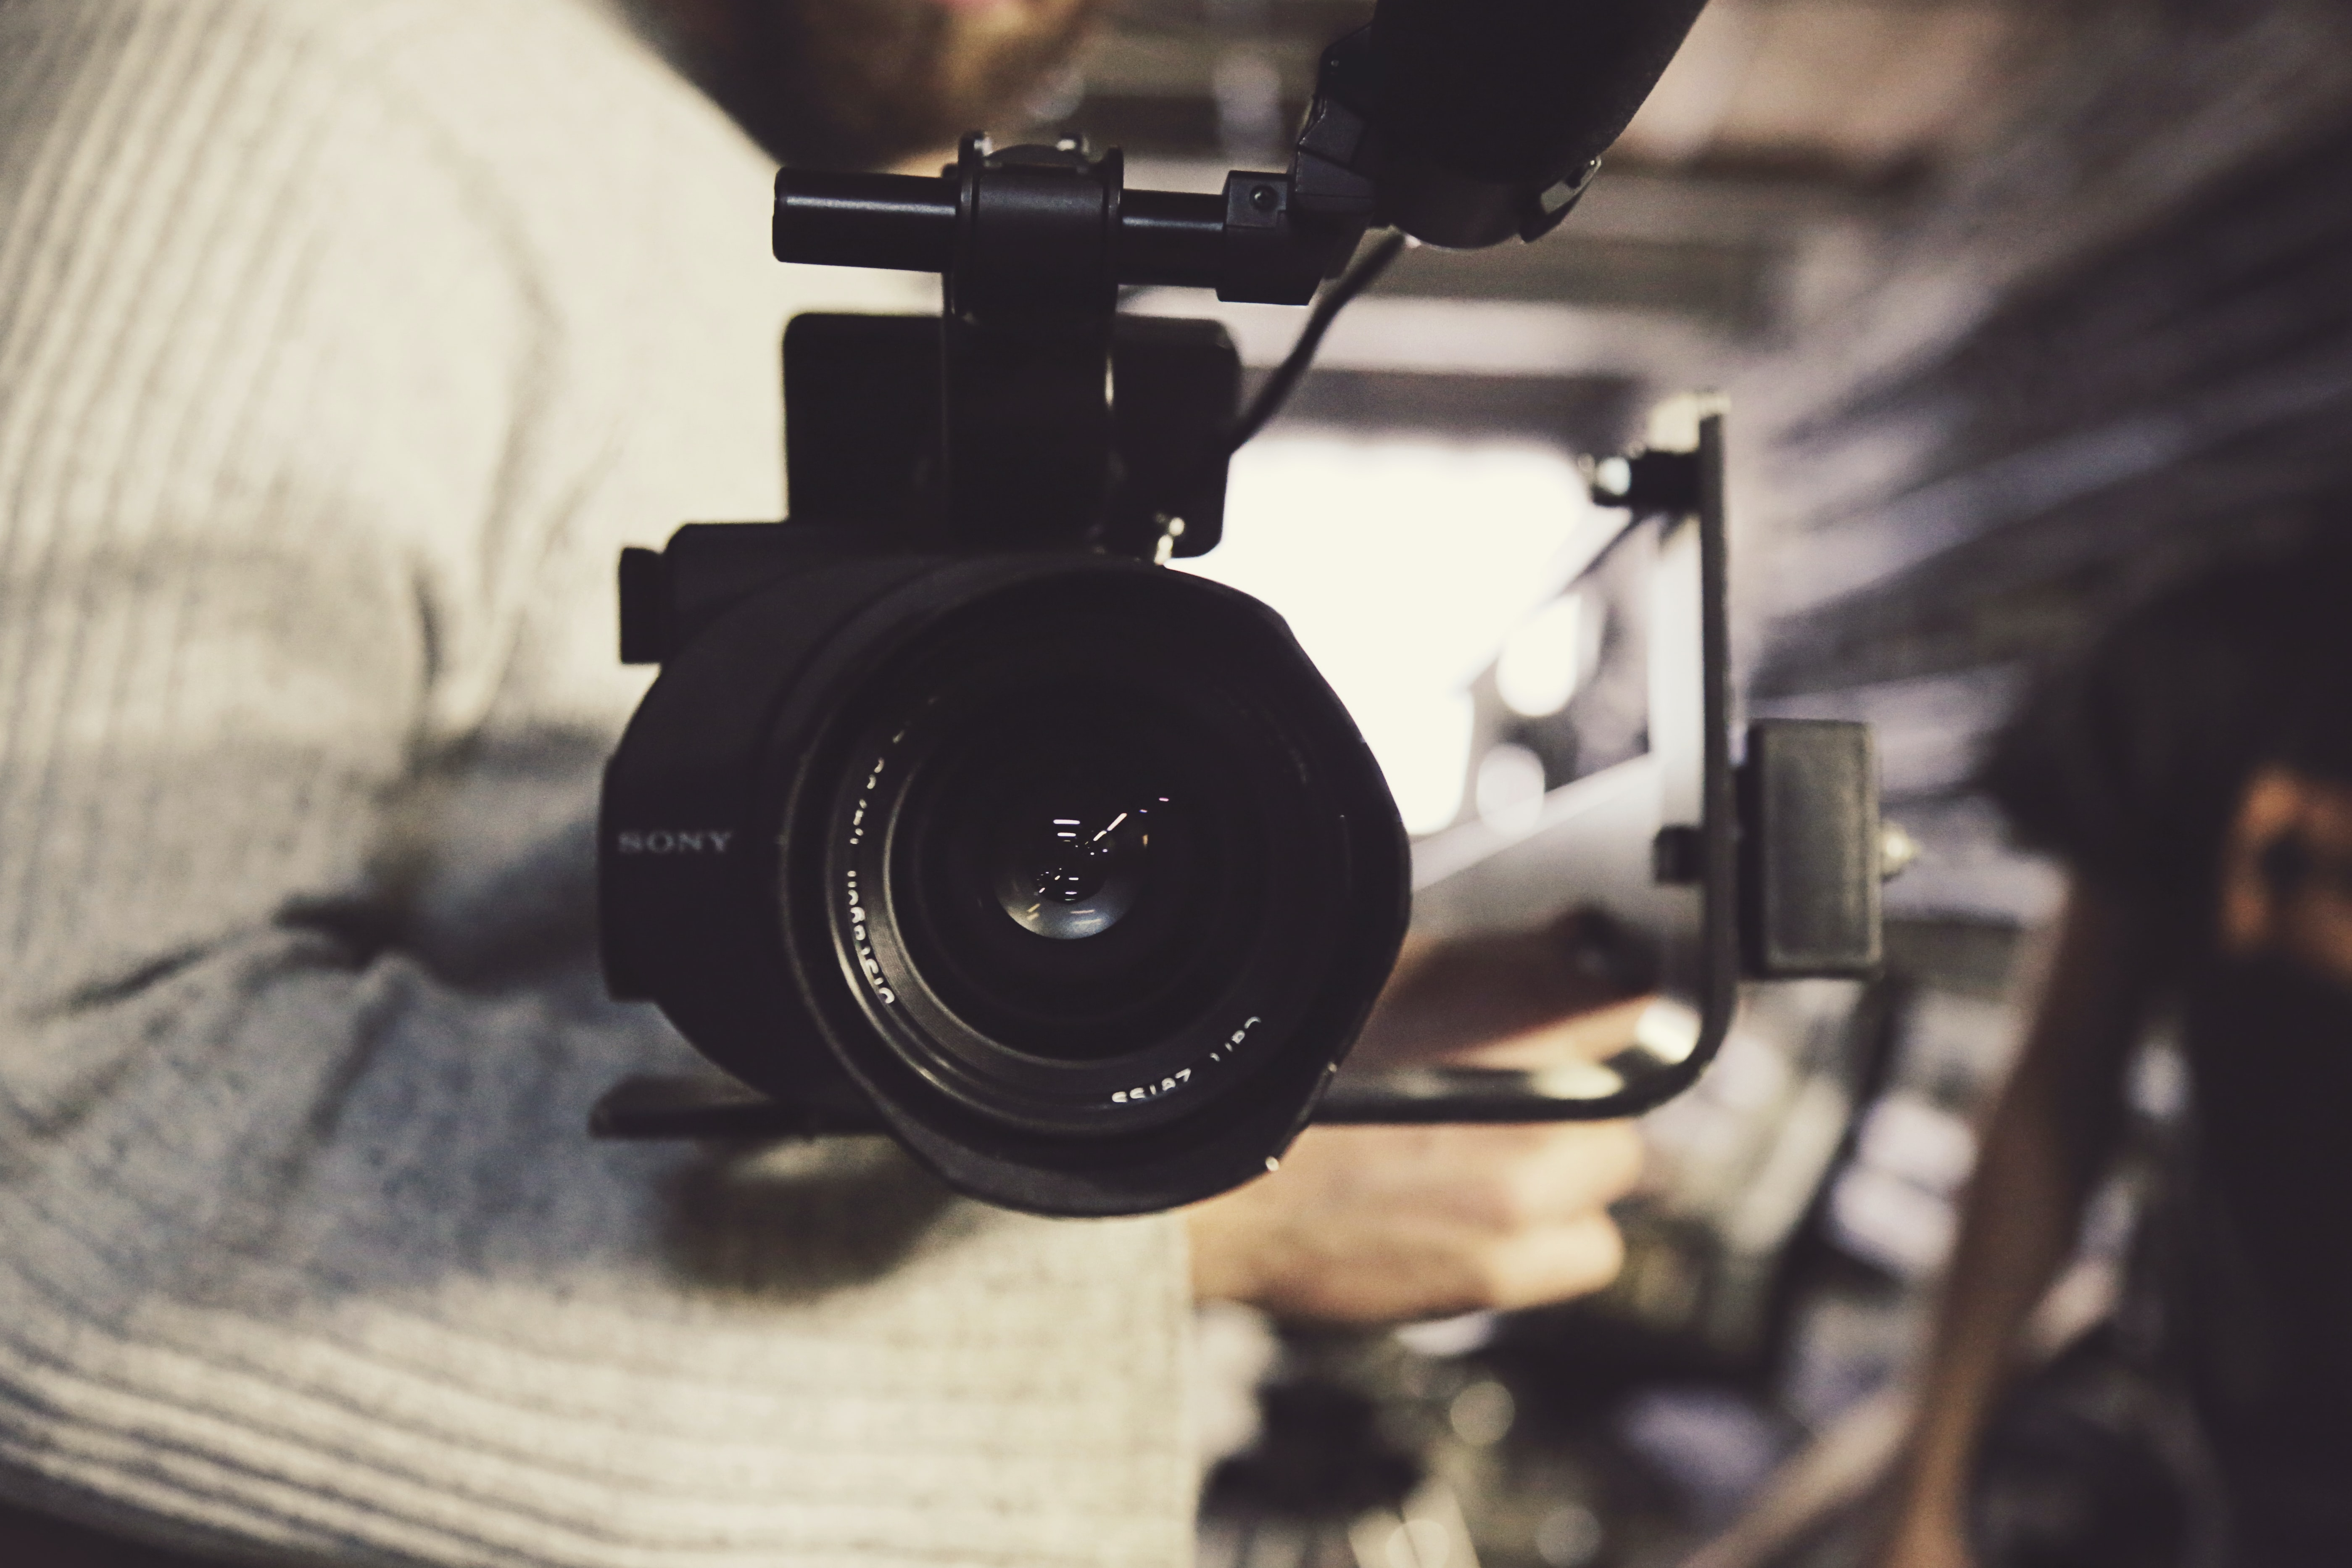 Close-up of a video camera held by a man